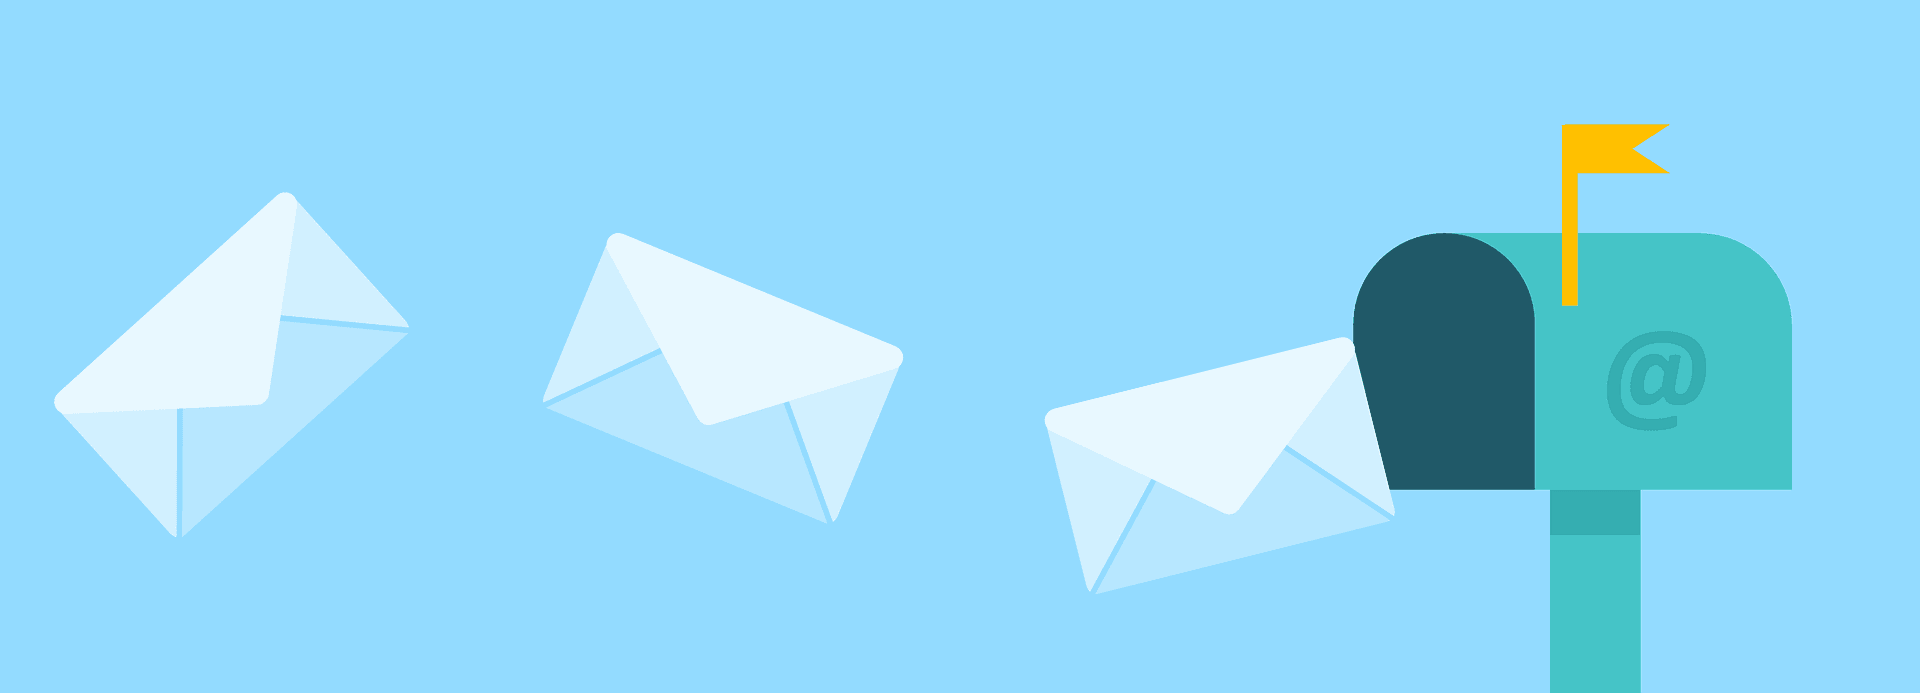 Top 5 Copywriting Tips for User Onboarding Emails(Part 2)